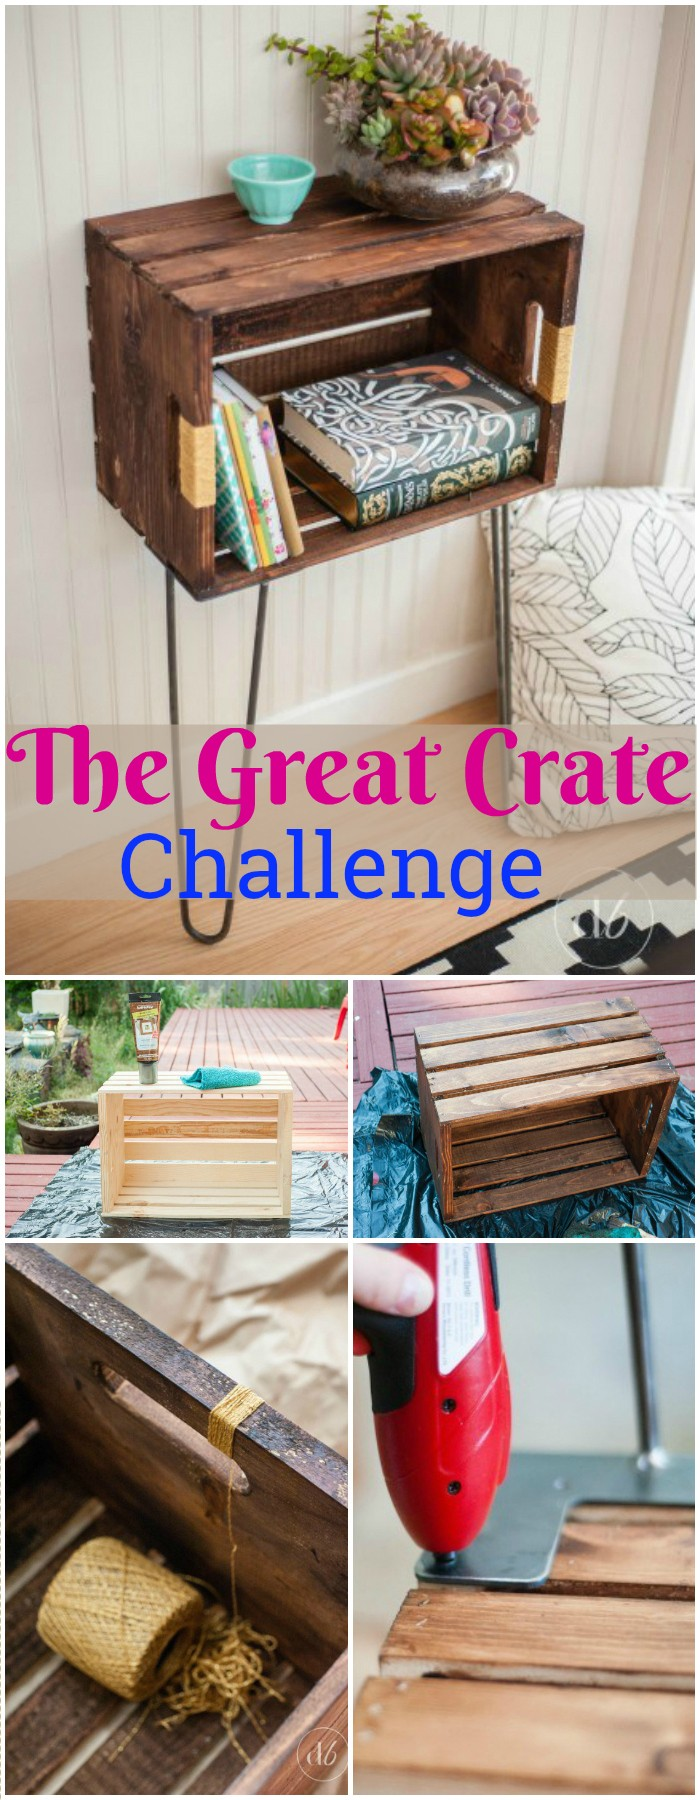 DIY Projects For The Home Decorations The Great Crate Challenge